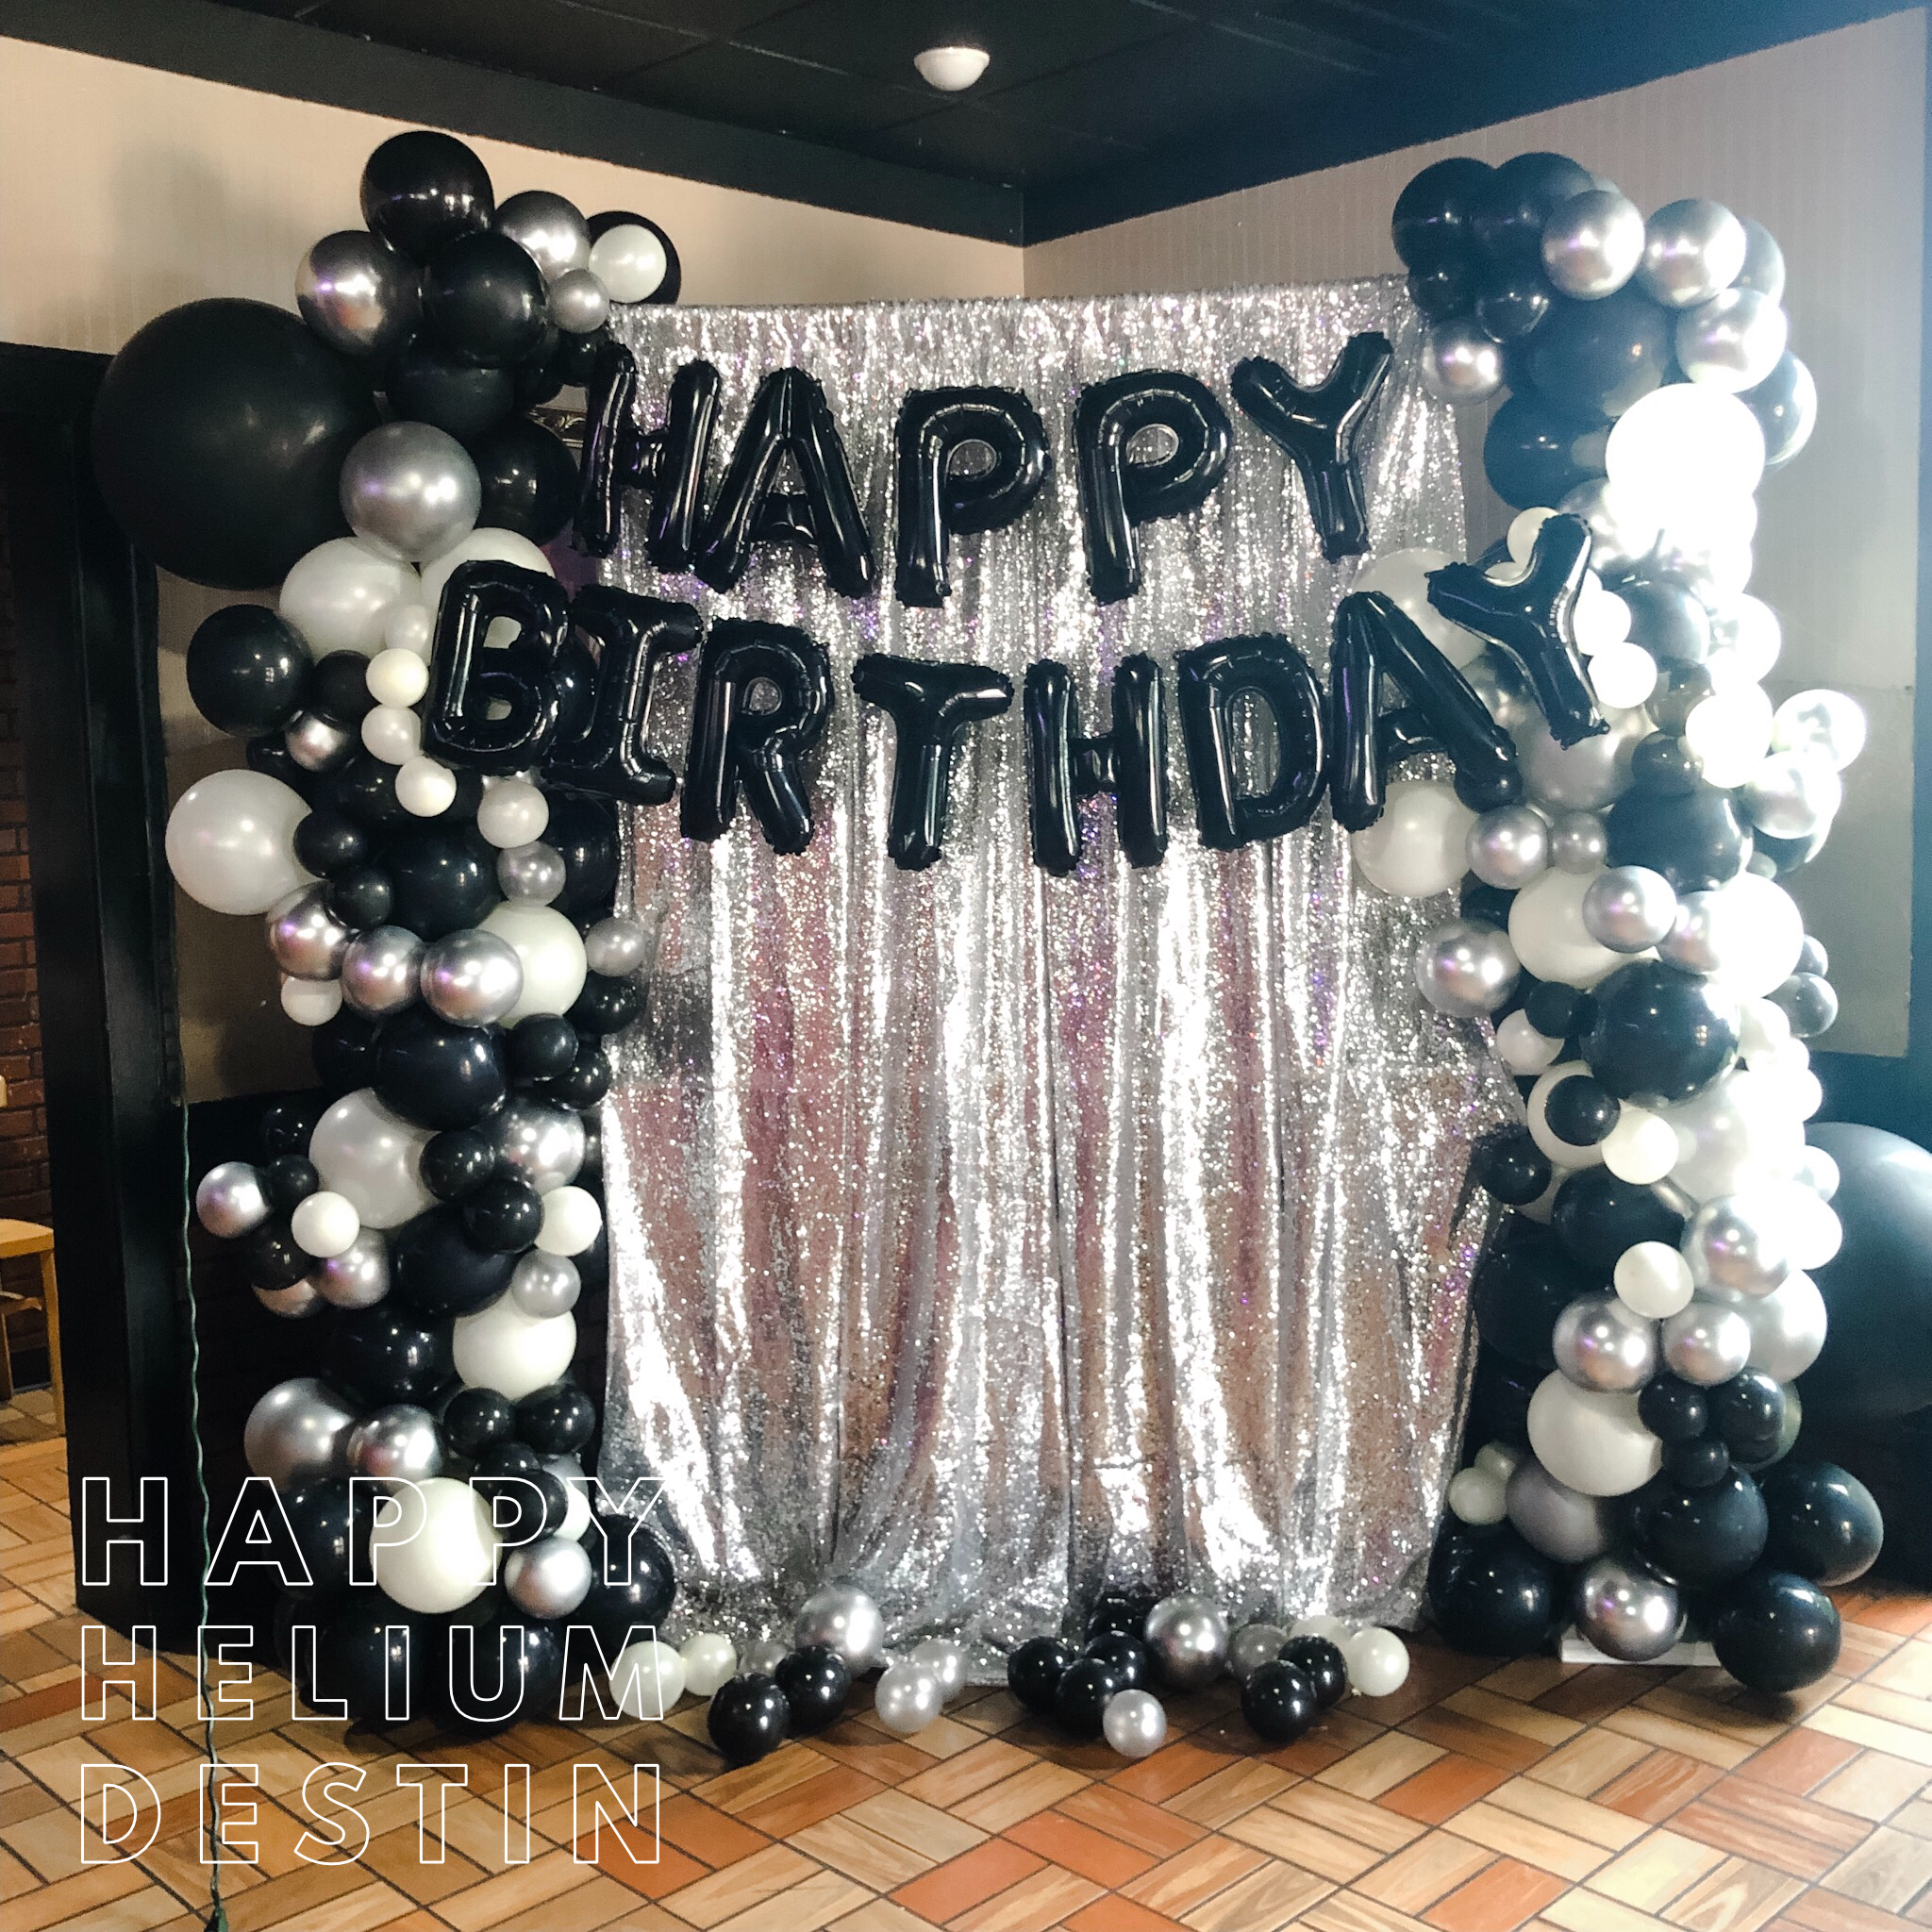 Pin By Violet32hart60 On Balloon In 2020 21st Birthday Decorations Balloon Decorations Party 16th Birthday Decorations